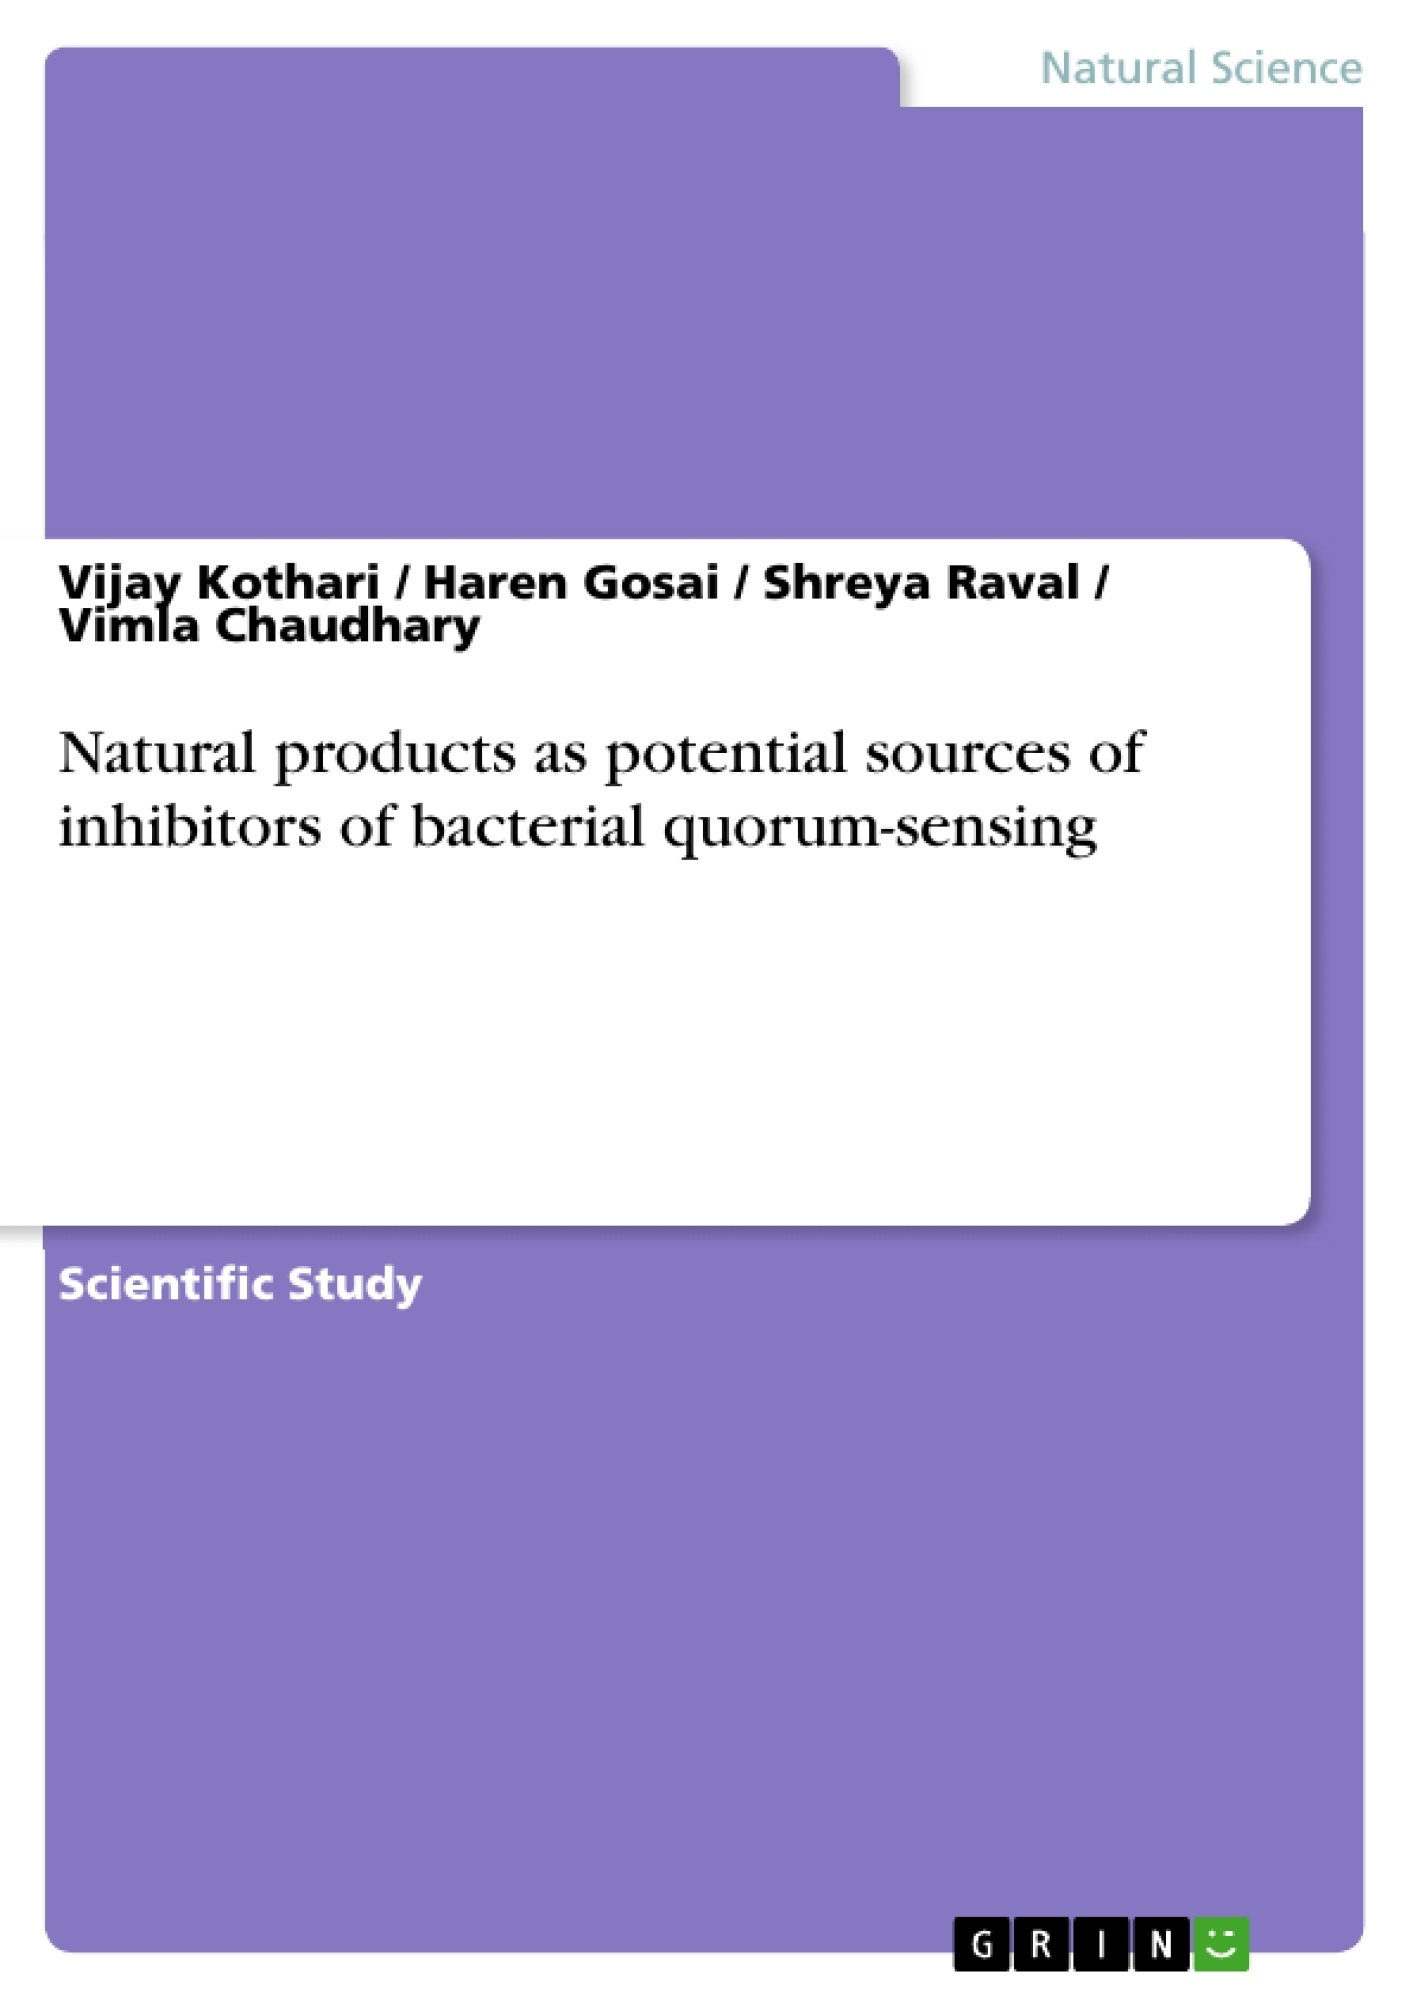 Natural product thesis